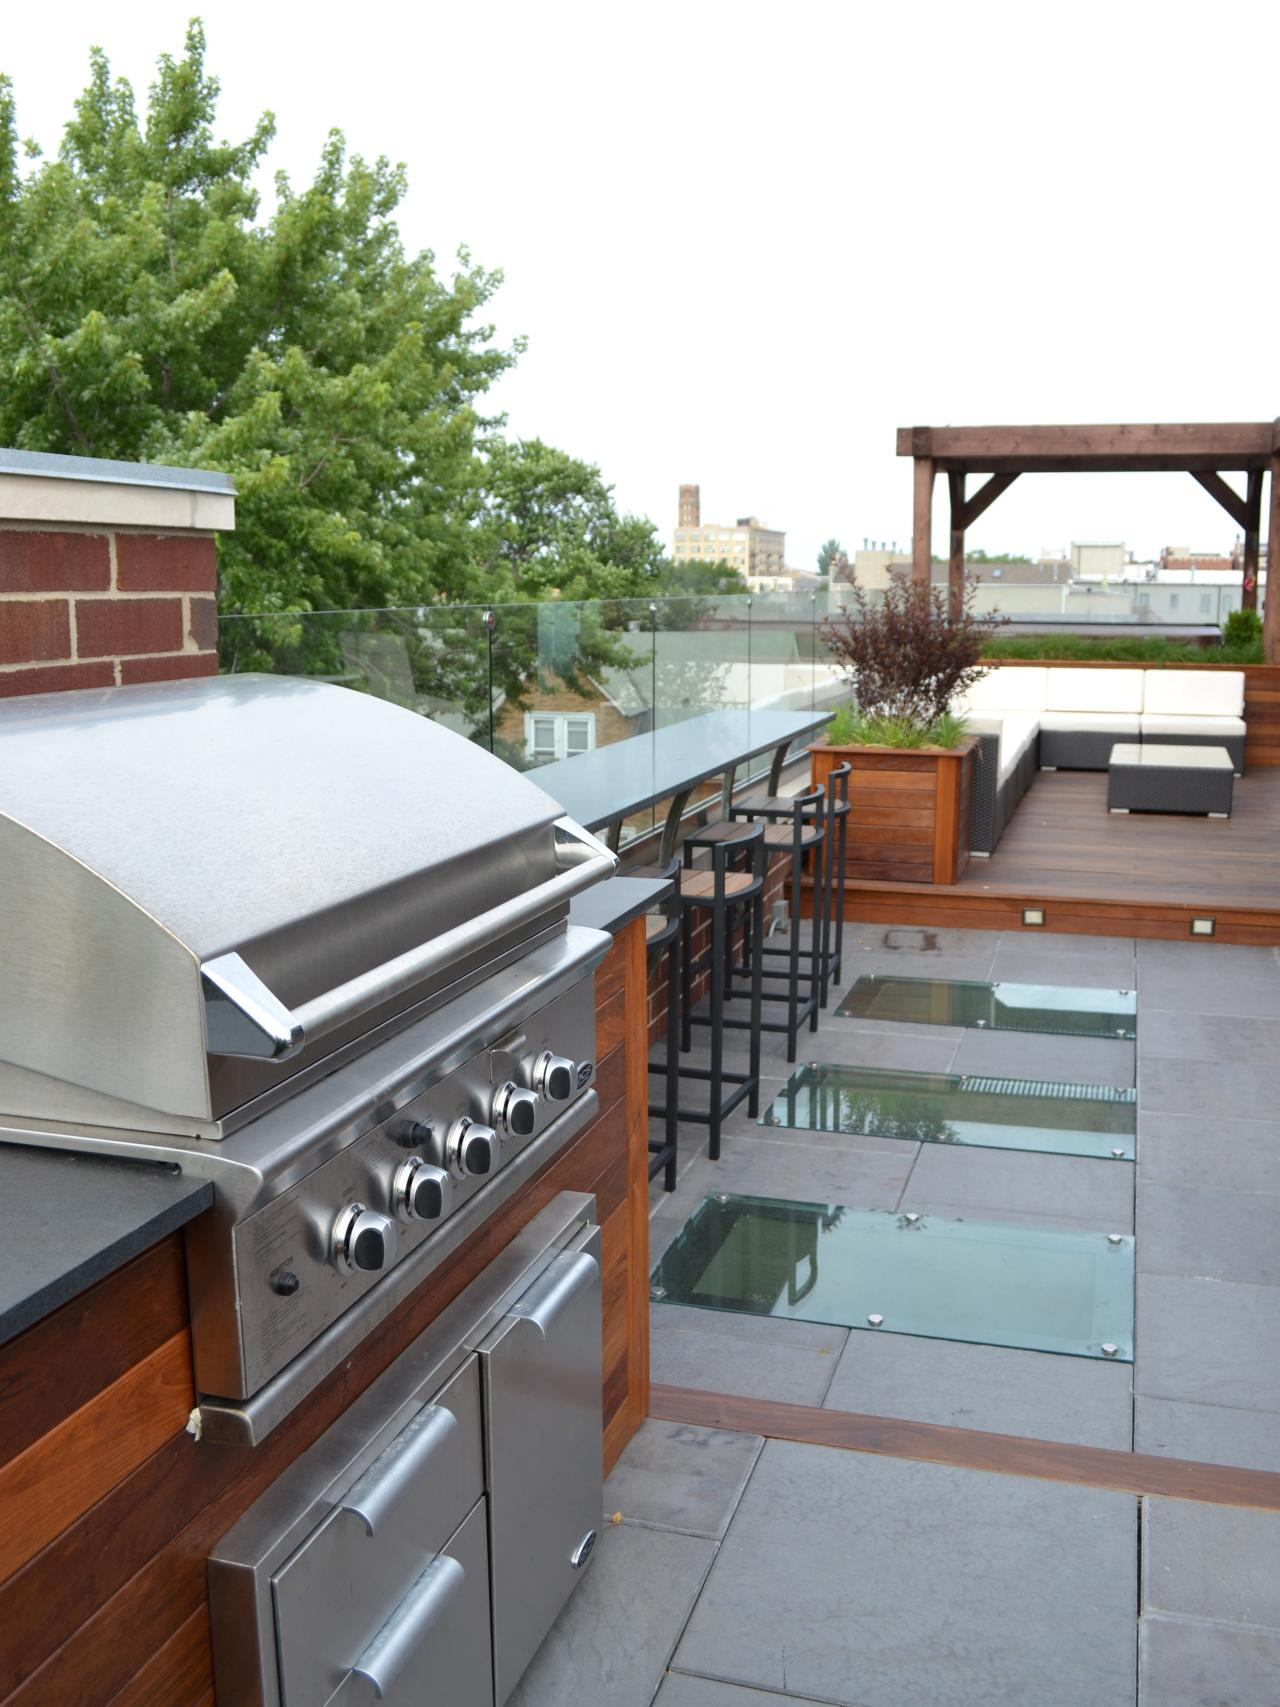 Outdoor Grill Design Ideas outdoor kitchen plans Outdoor Kitchen Design Ideas